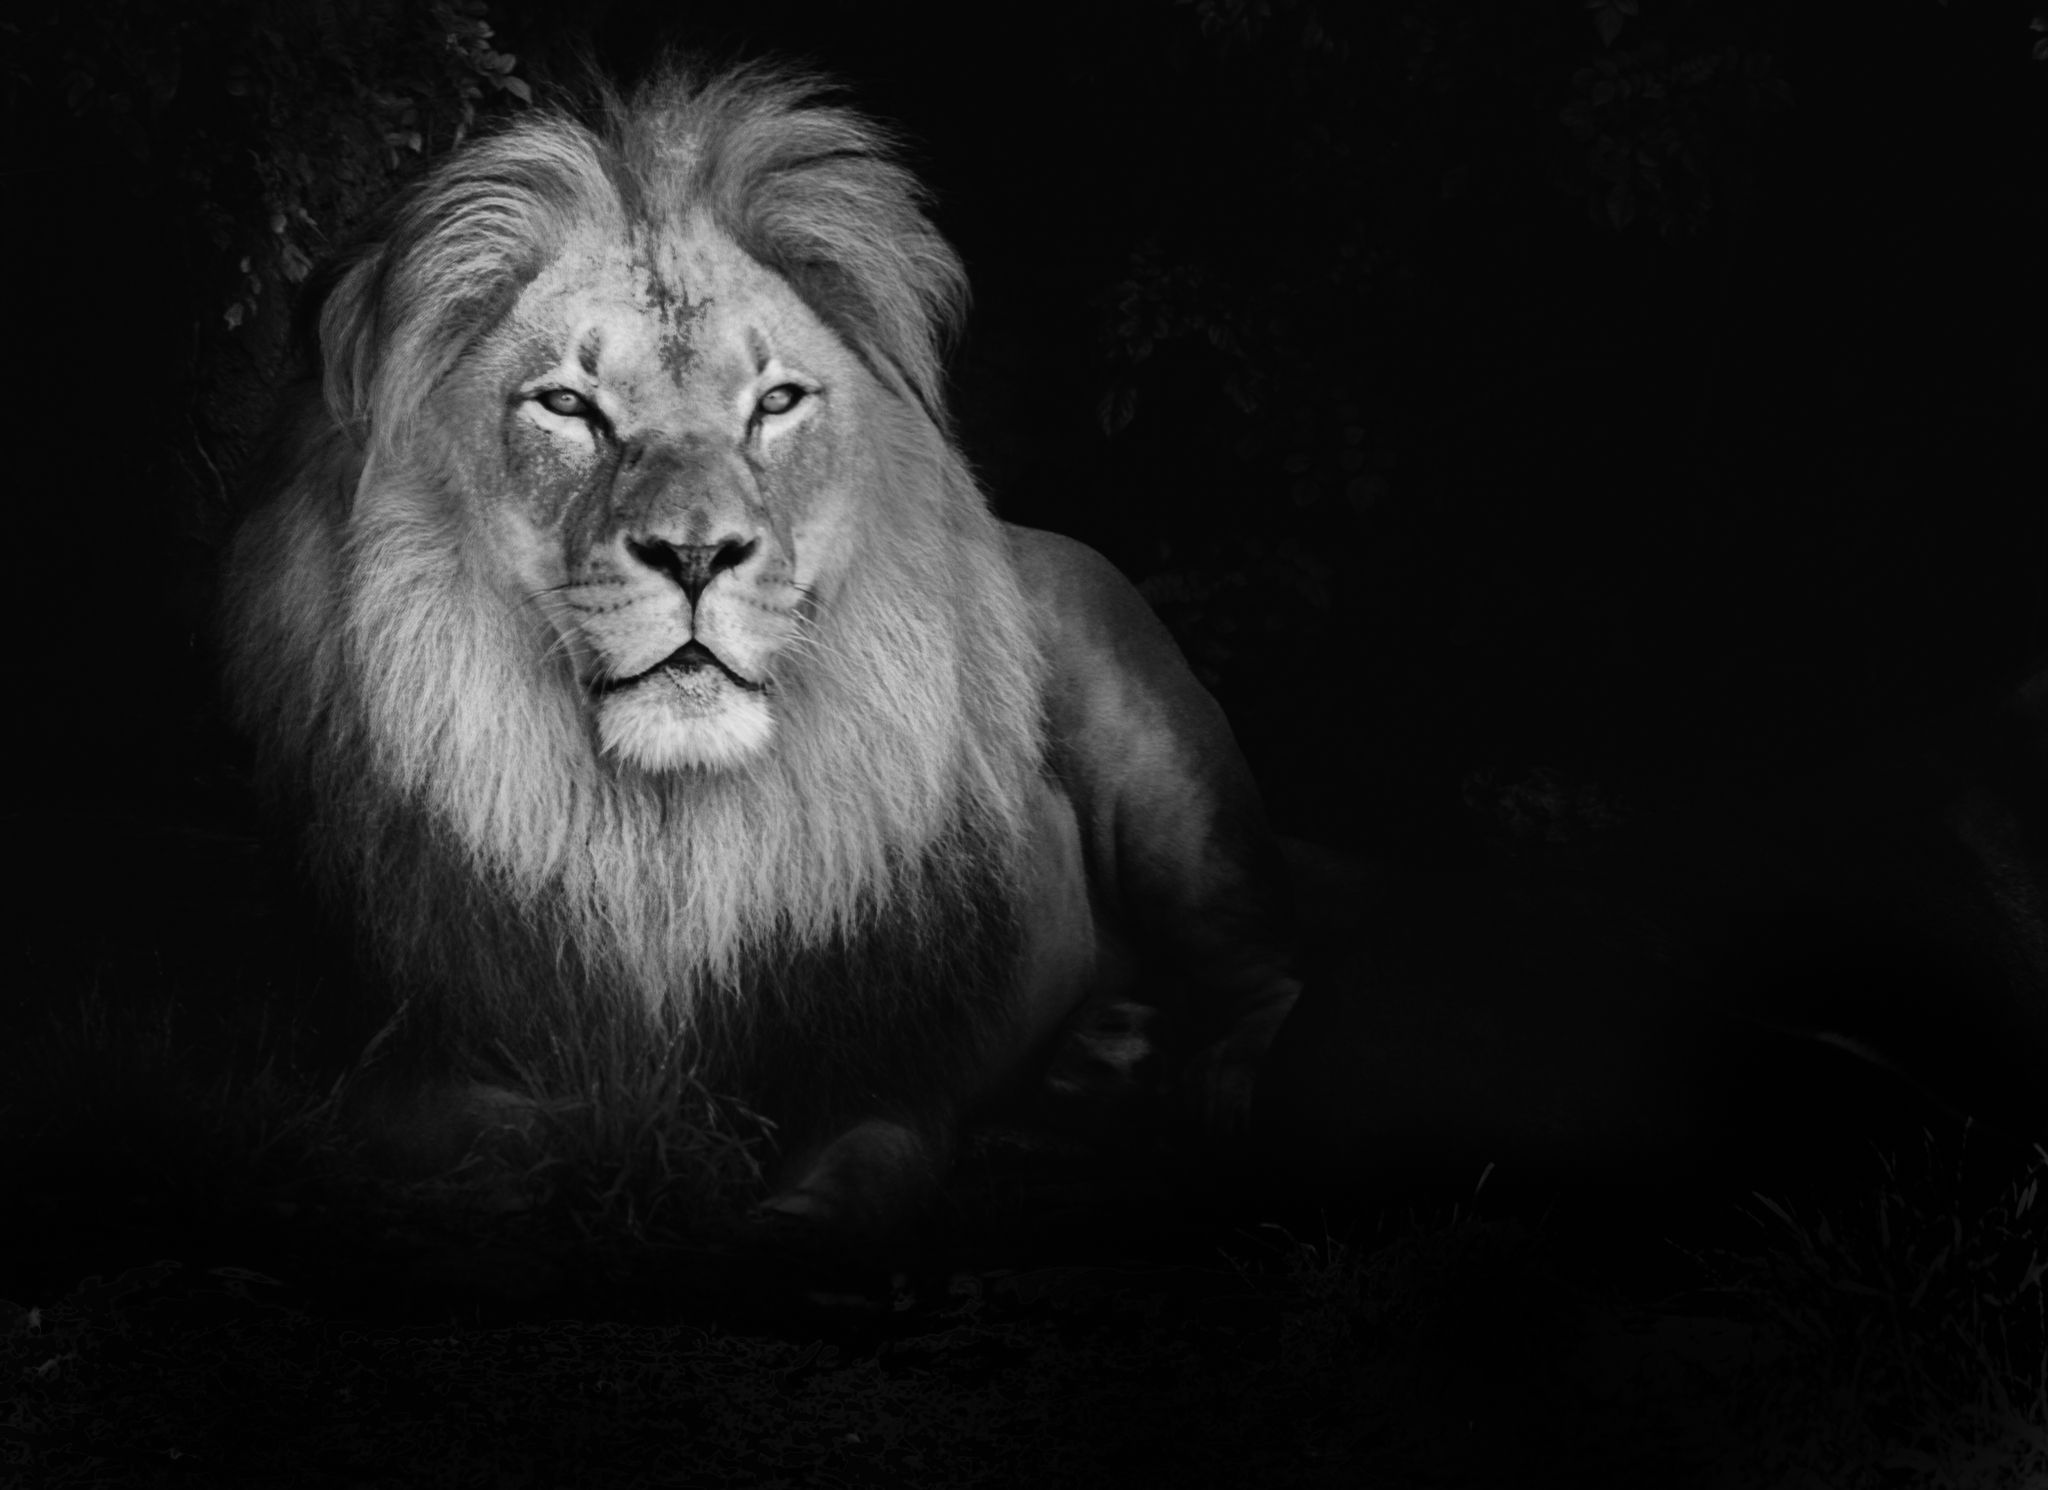 Lion Black And White High Quality Wallpapers Wild Cats